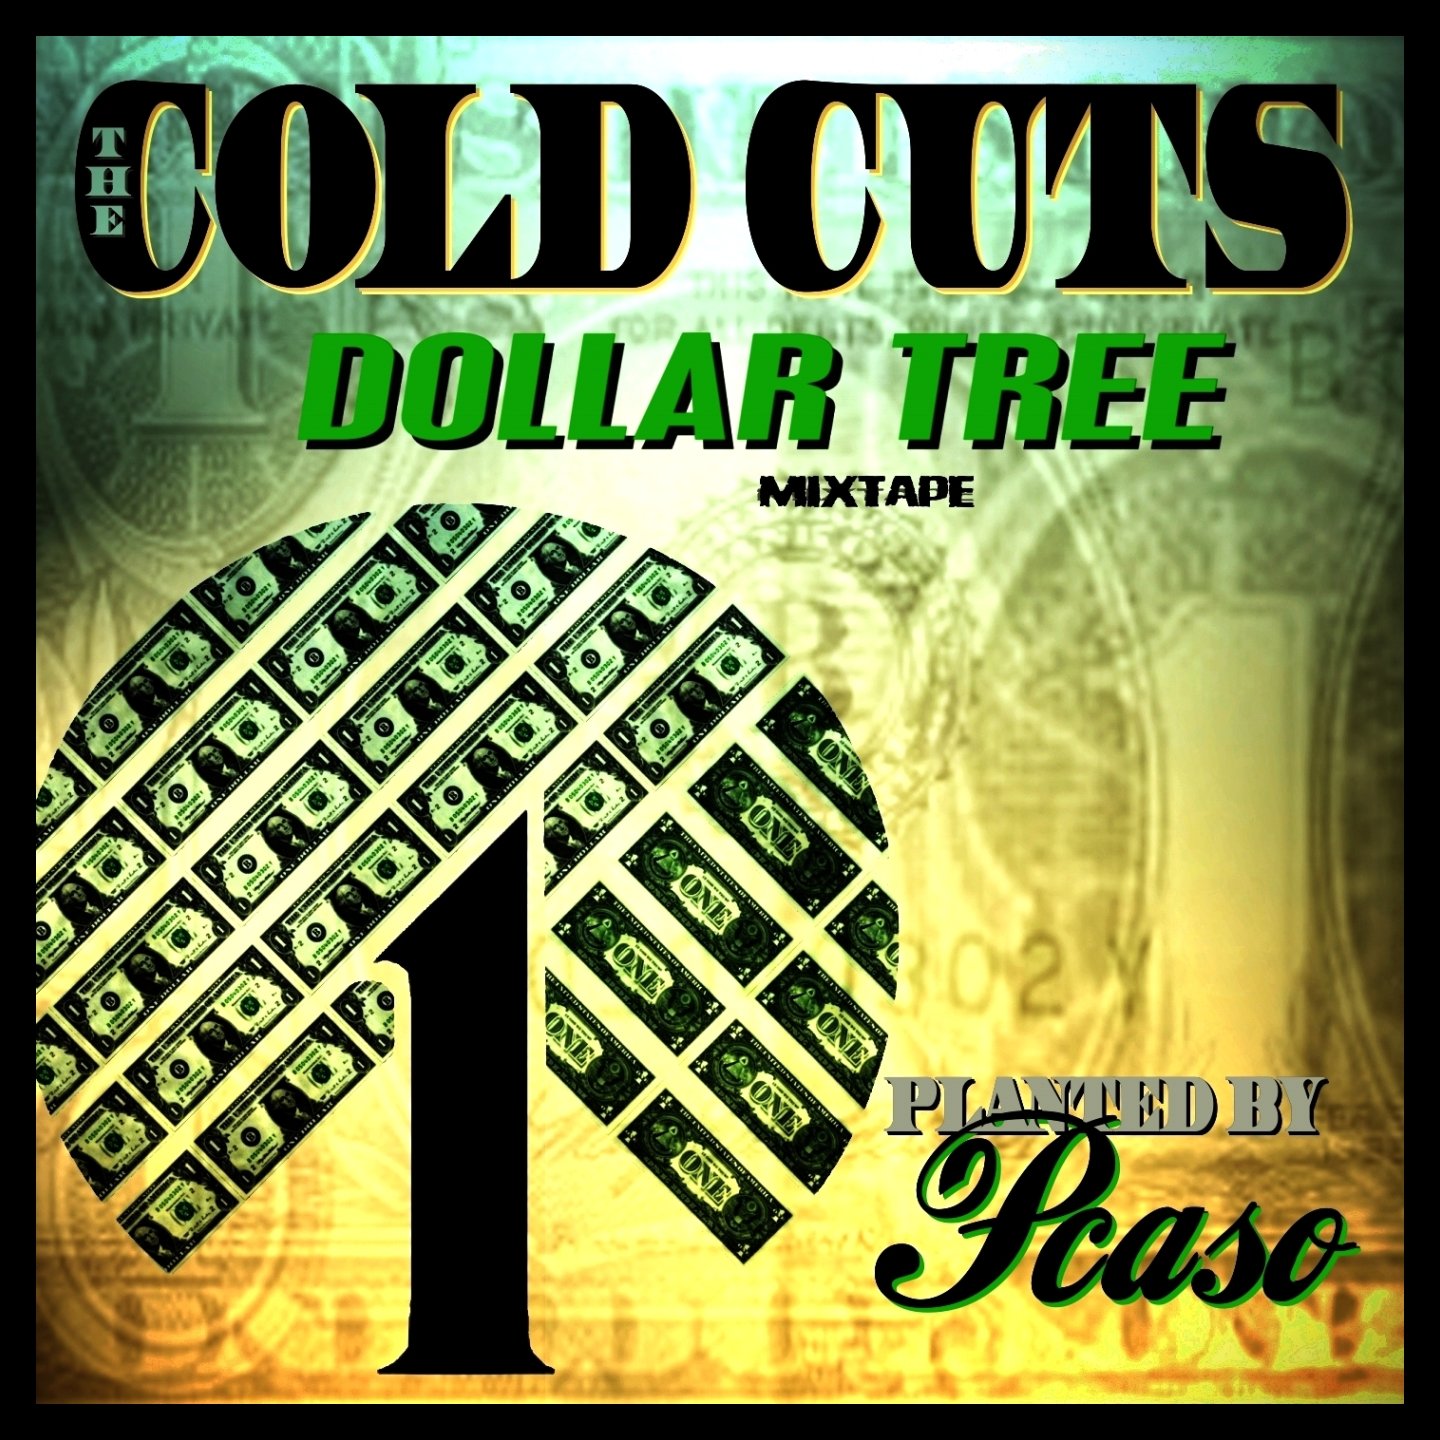 Dollar Tree Mixtape